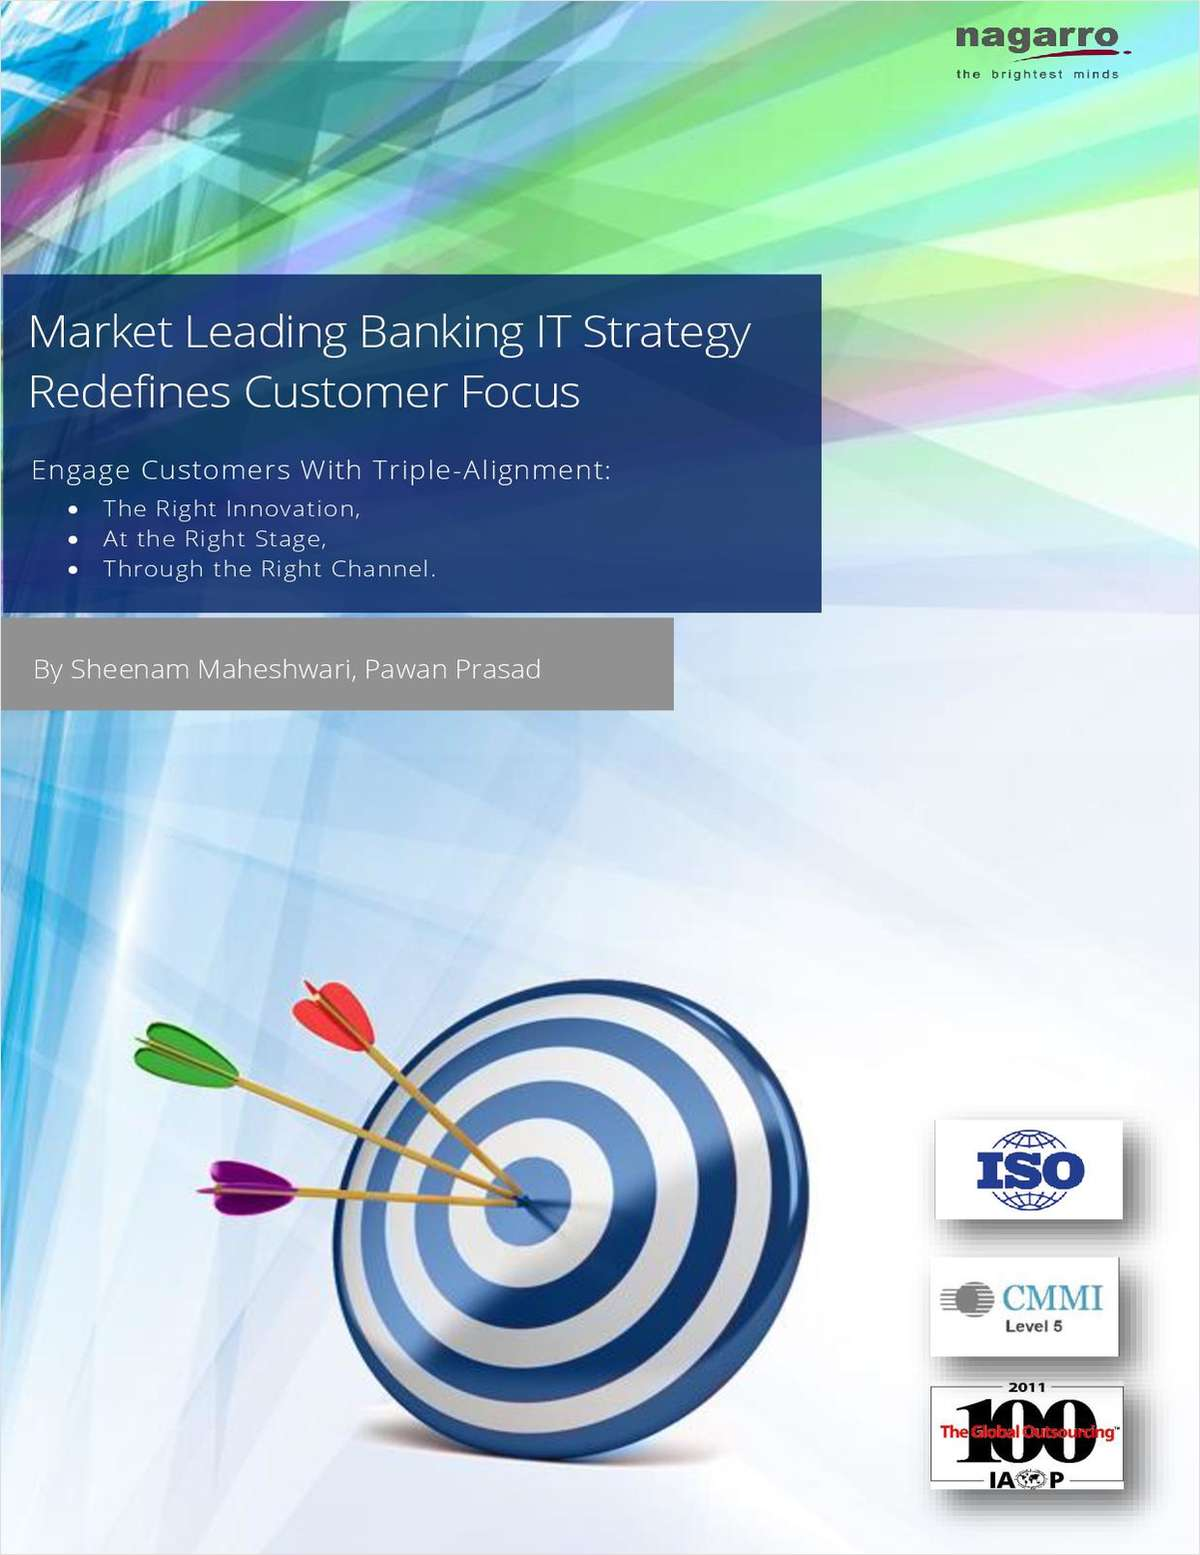 Market Leading Banking IT Strategy Redefines Customer Focus